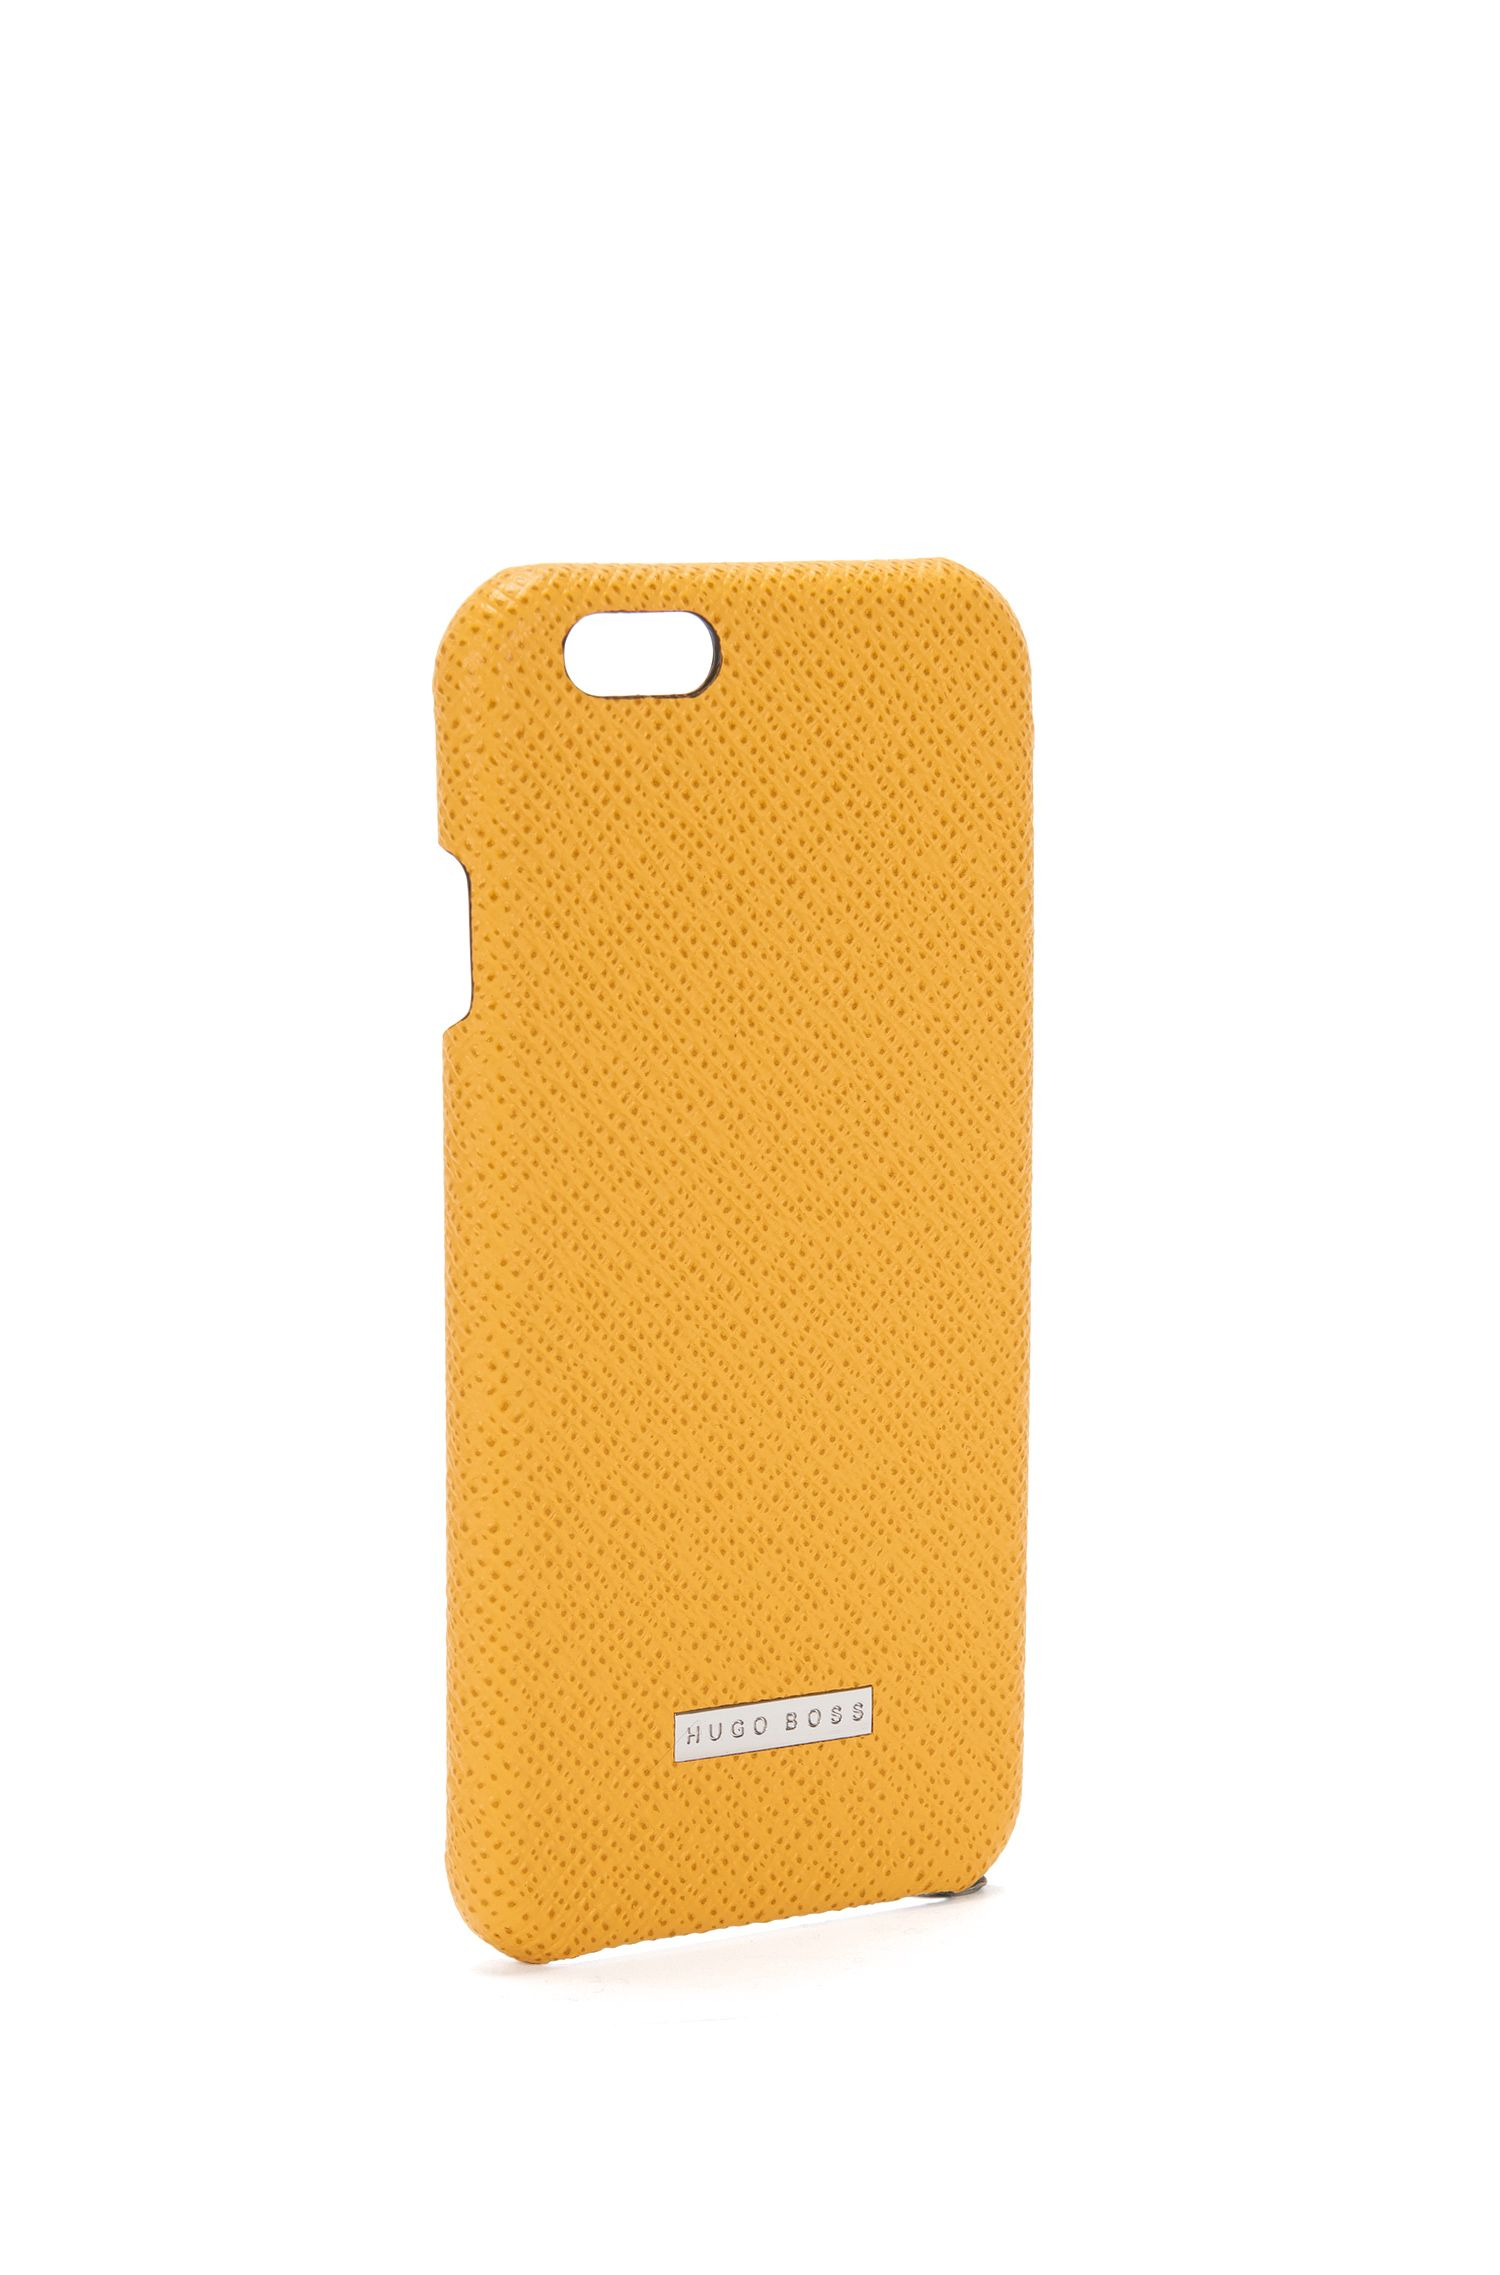 Carcasa de smartphone para iPhone 6: 'Signature_Phone 6'